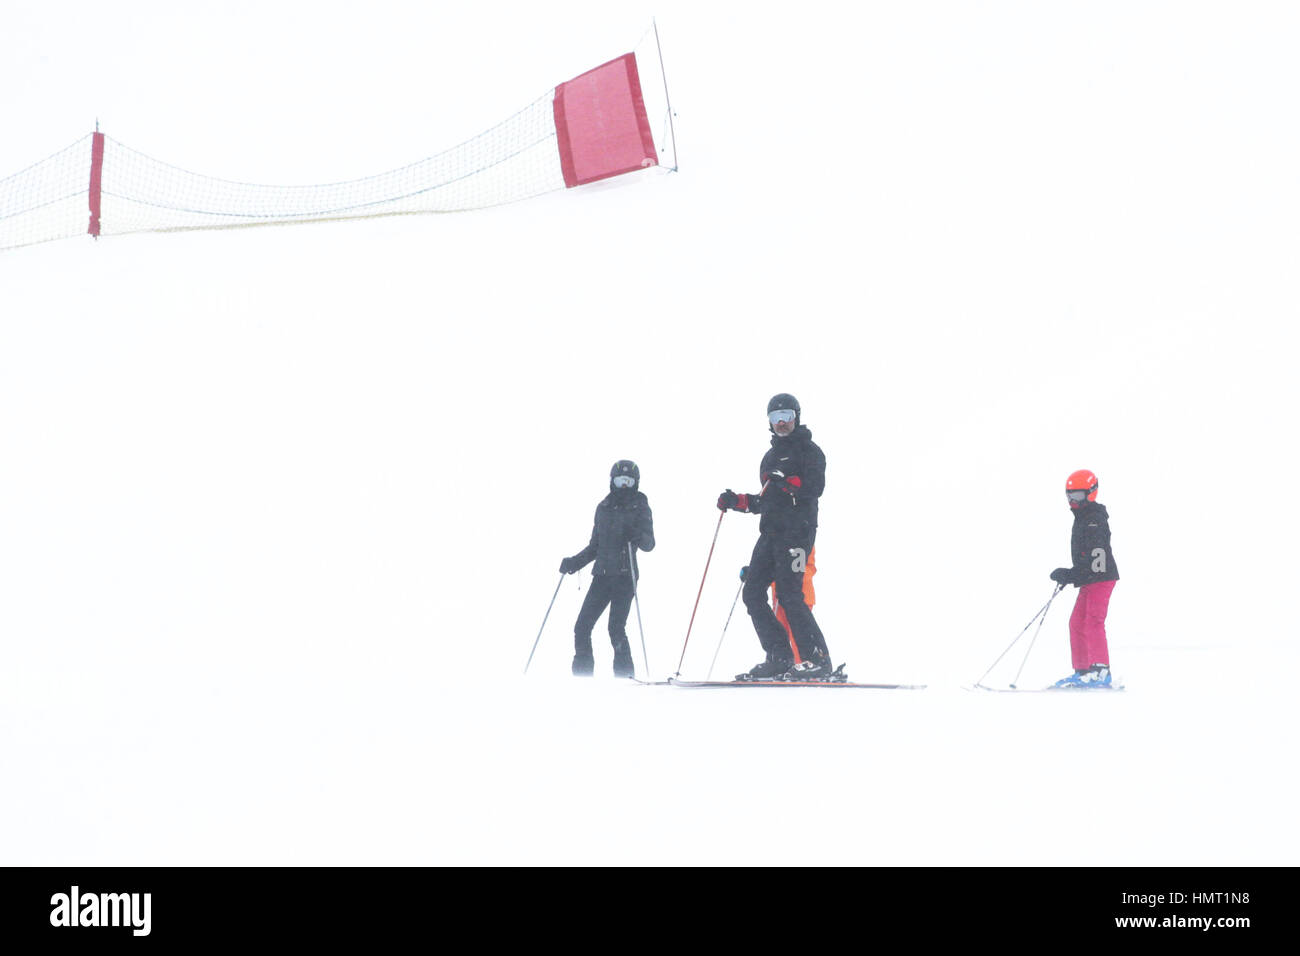 Spain´s Kings, Felipe of Borbon with their daughters princesses Leonor and Sofia skiing in Astun, Huesca, on Sunday Stock Photo